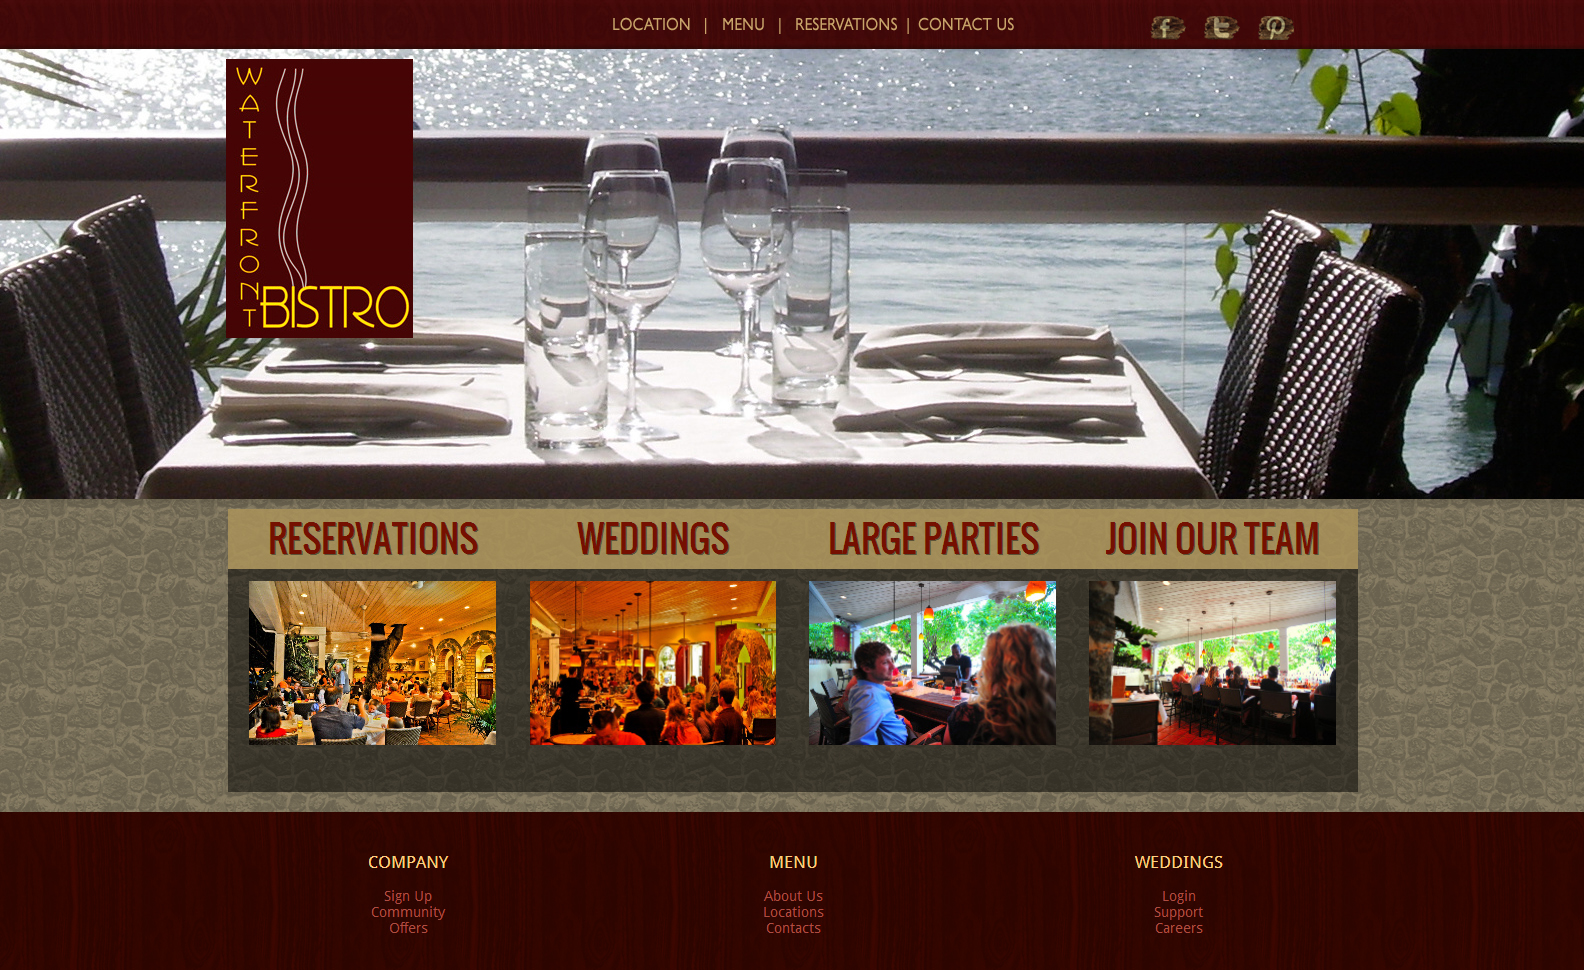 The Waterfront Bistro